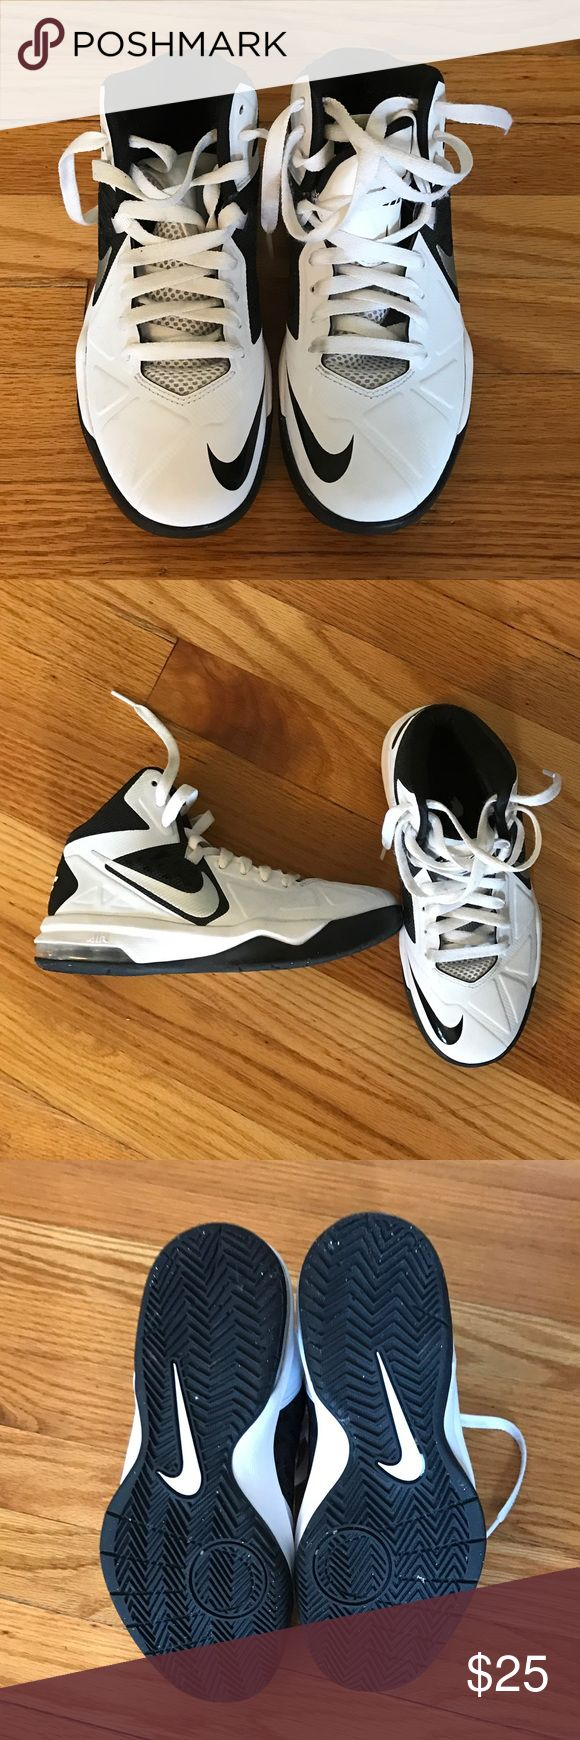 Boys Nike Air Basketball Shoes, Size 5 Boys Nike Air Basketball Shoes. Size 5. Only used once on a basketball court because they ended up being too big for my son. Excellent condition. Very little signs of use. Nike Shoes Sneakers